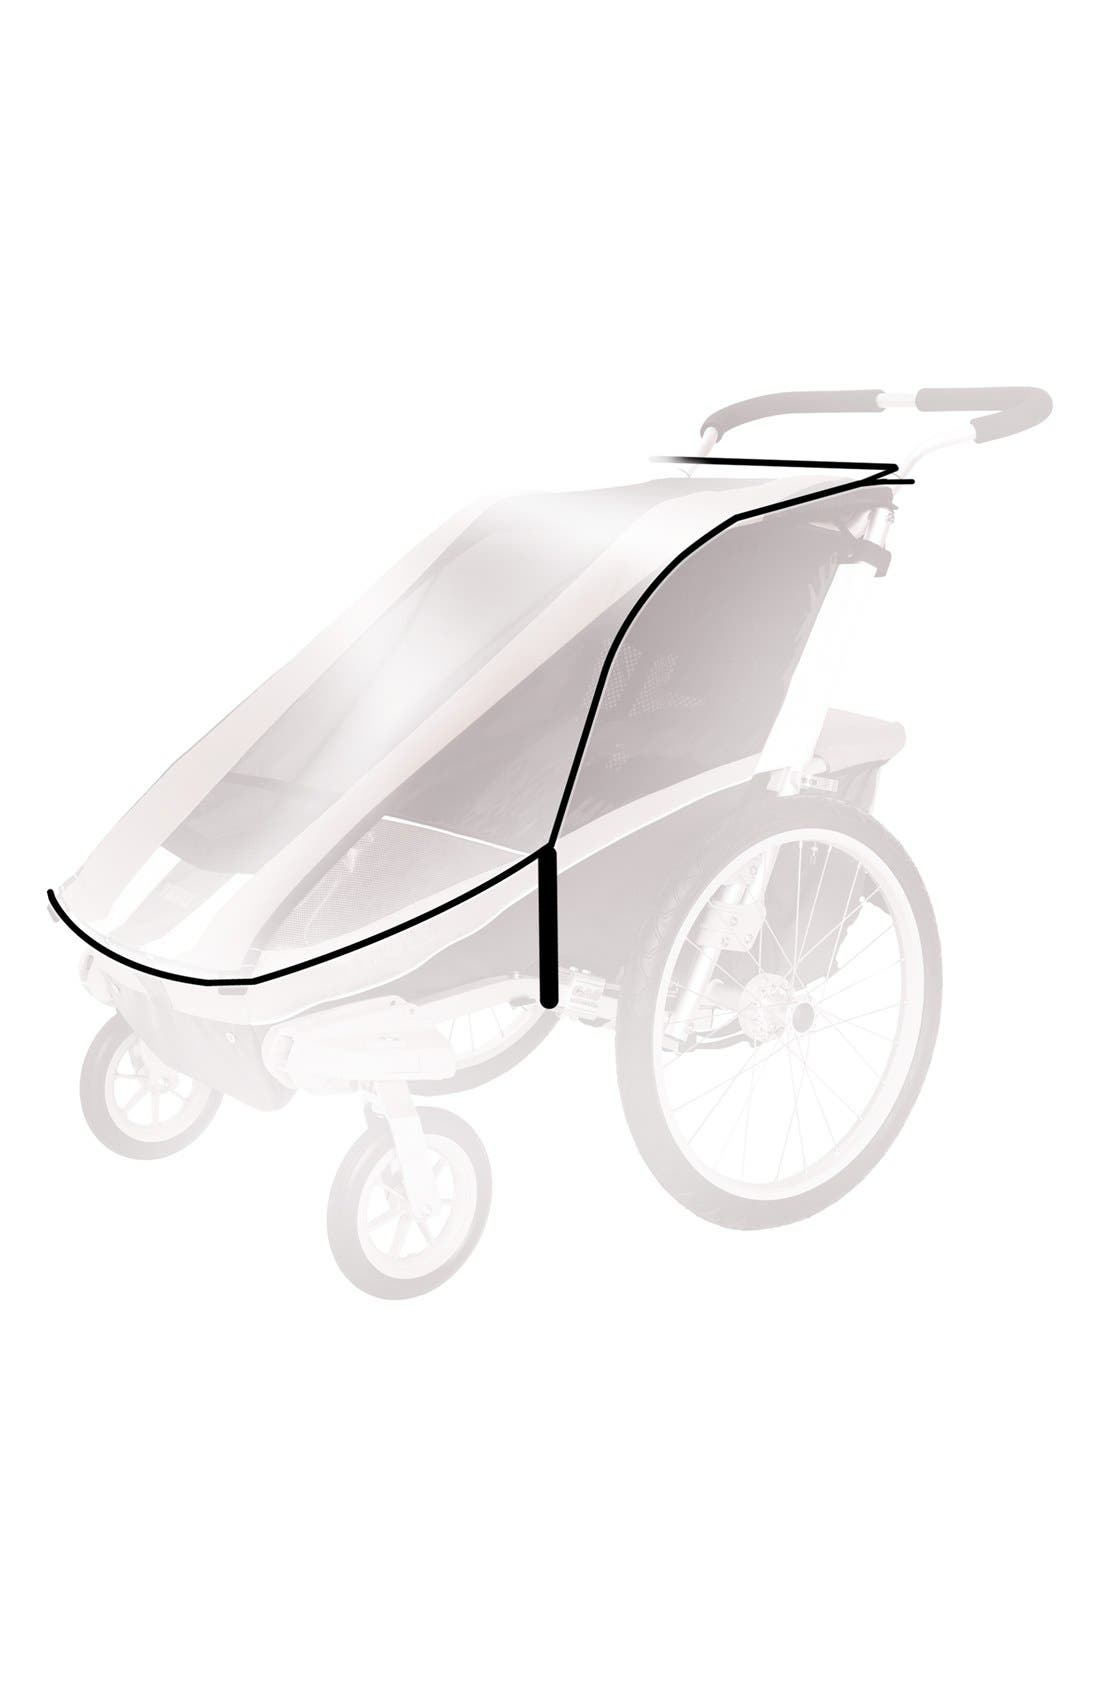 Alternate Image 1 Selected - Thule Protective Rain Cover for Thule Chariot Cheetah 2 Stroller